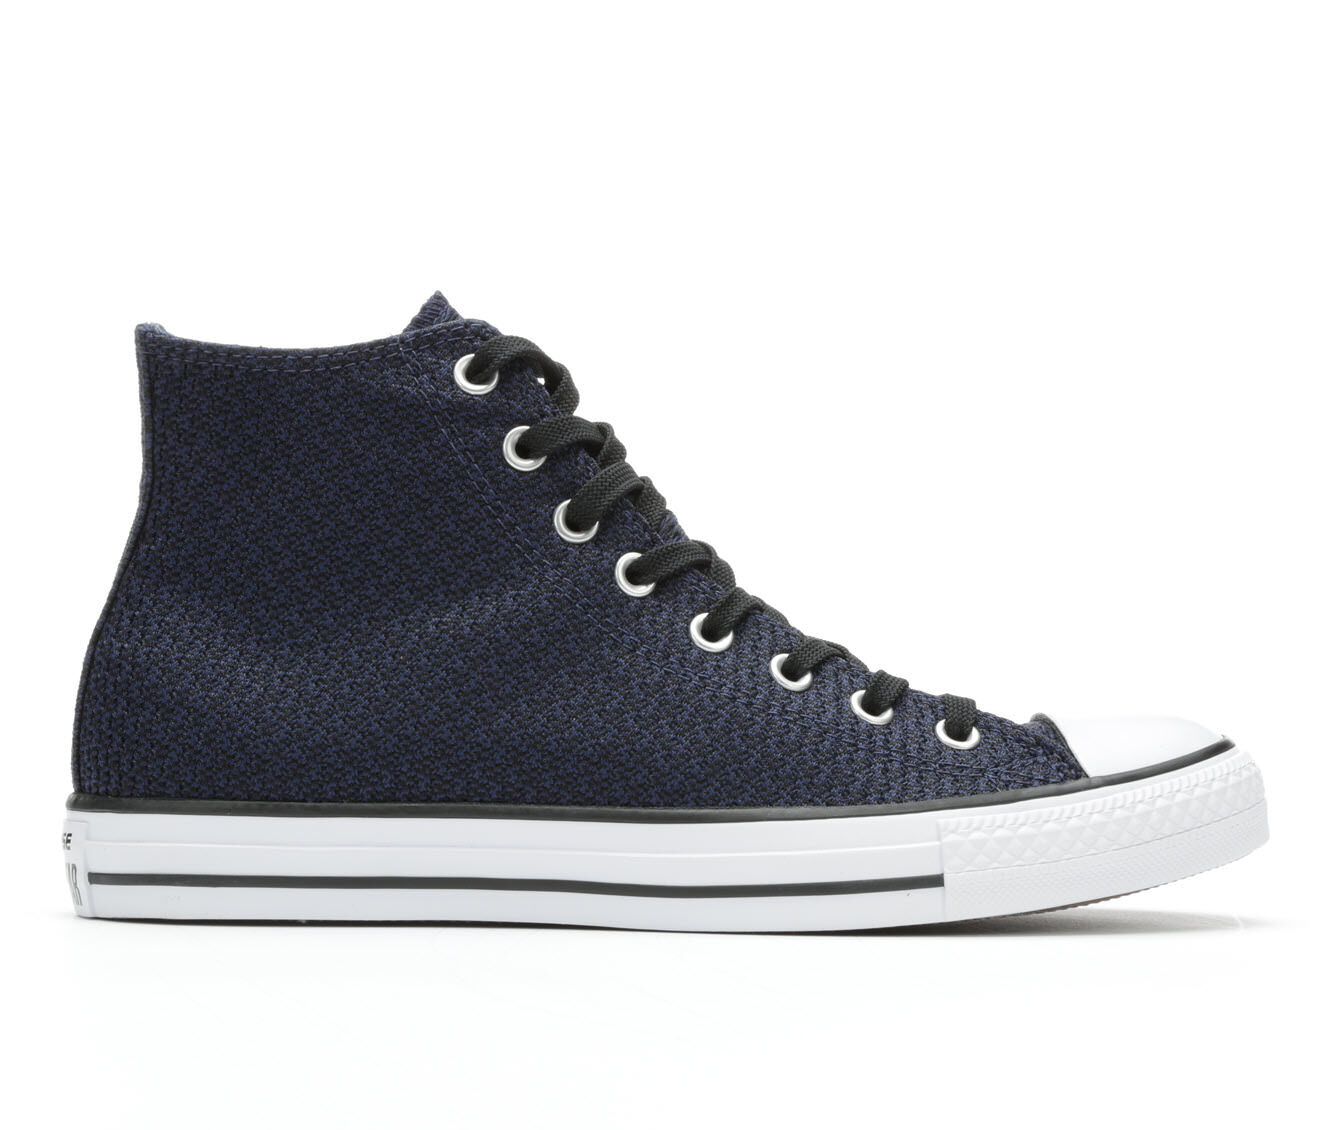 Adult Converse All Star Chuck ... Taylor High-Top Sneakers cheap online store finishline for sale original cheap online pPpad